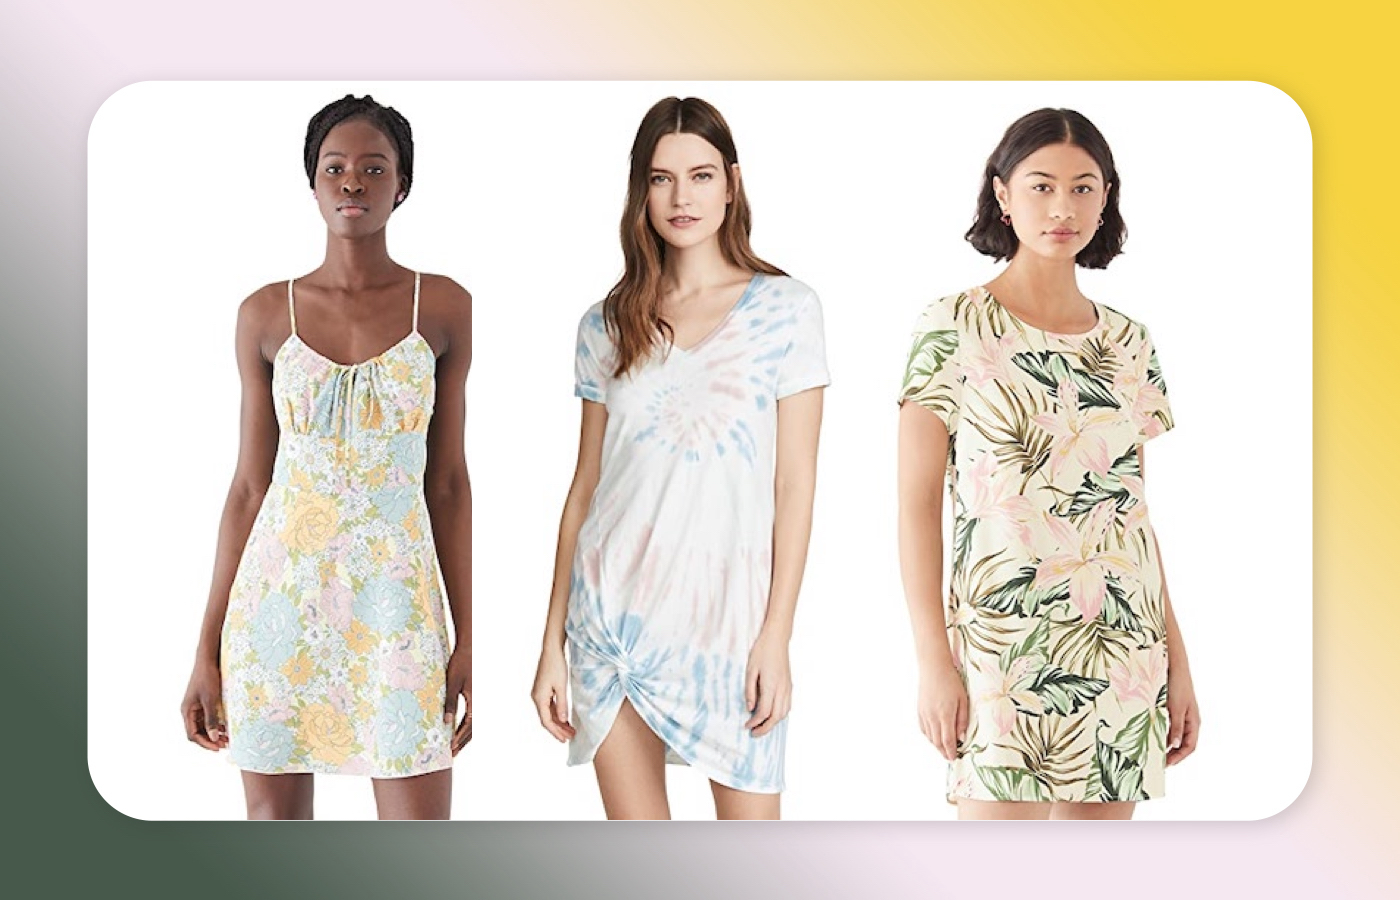 There are so many cute dresses on sale for under $50 at Shopbop right now